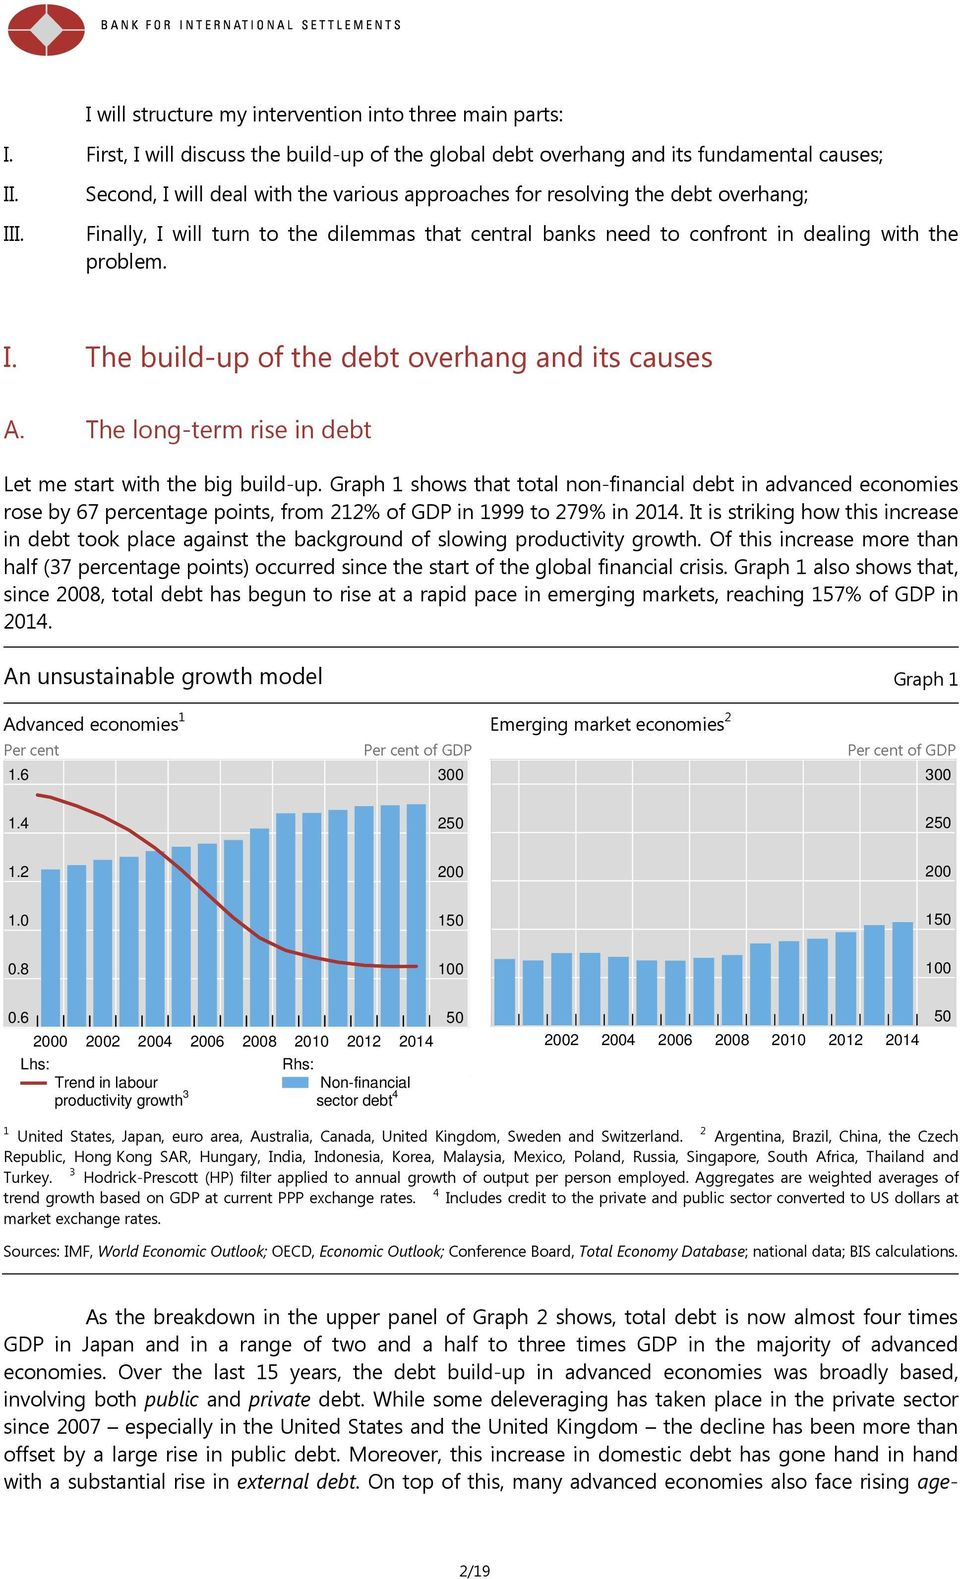 The long-term rise in debt Let me start with the big build-up. Graph 1 shows that total non-financial debt in advanced economies rose by 67 percentage points, from 212% of GDP in 1999 to 279% in 214.